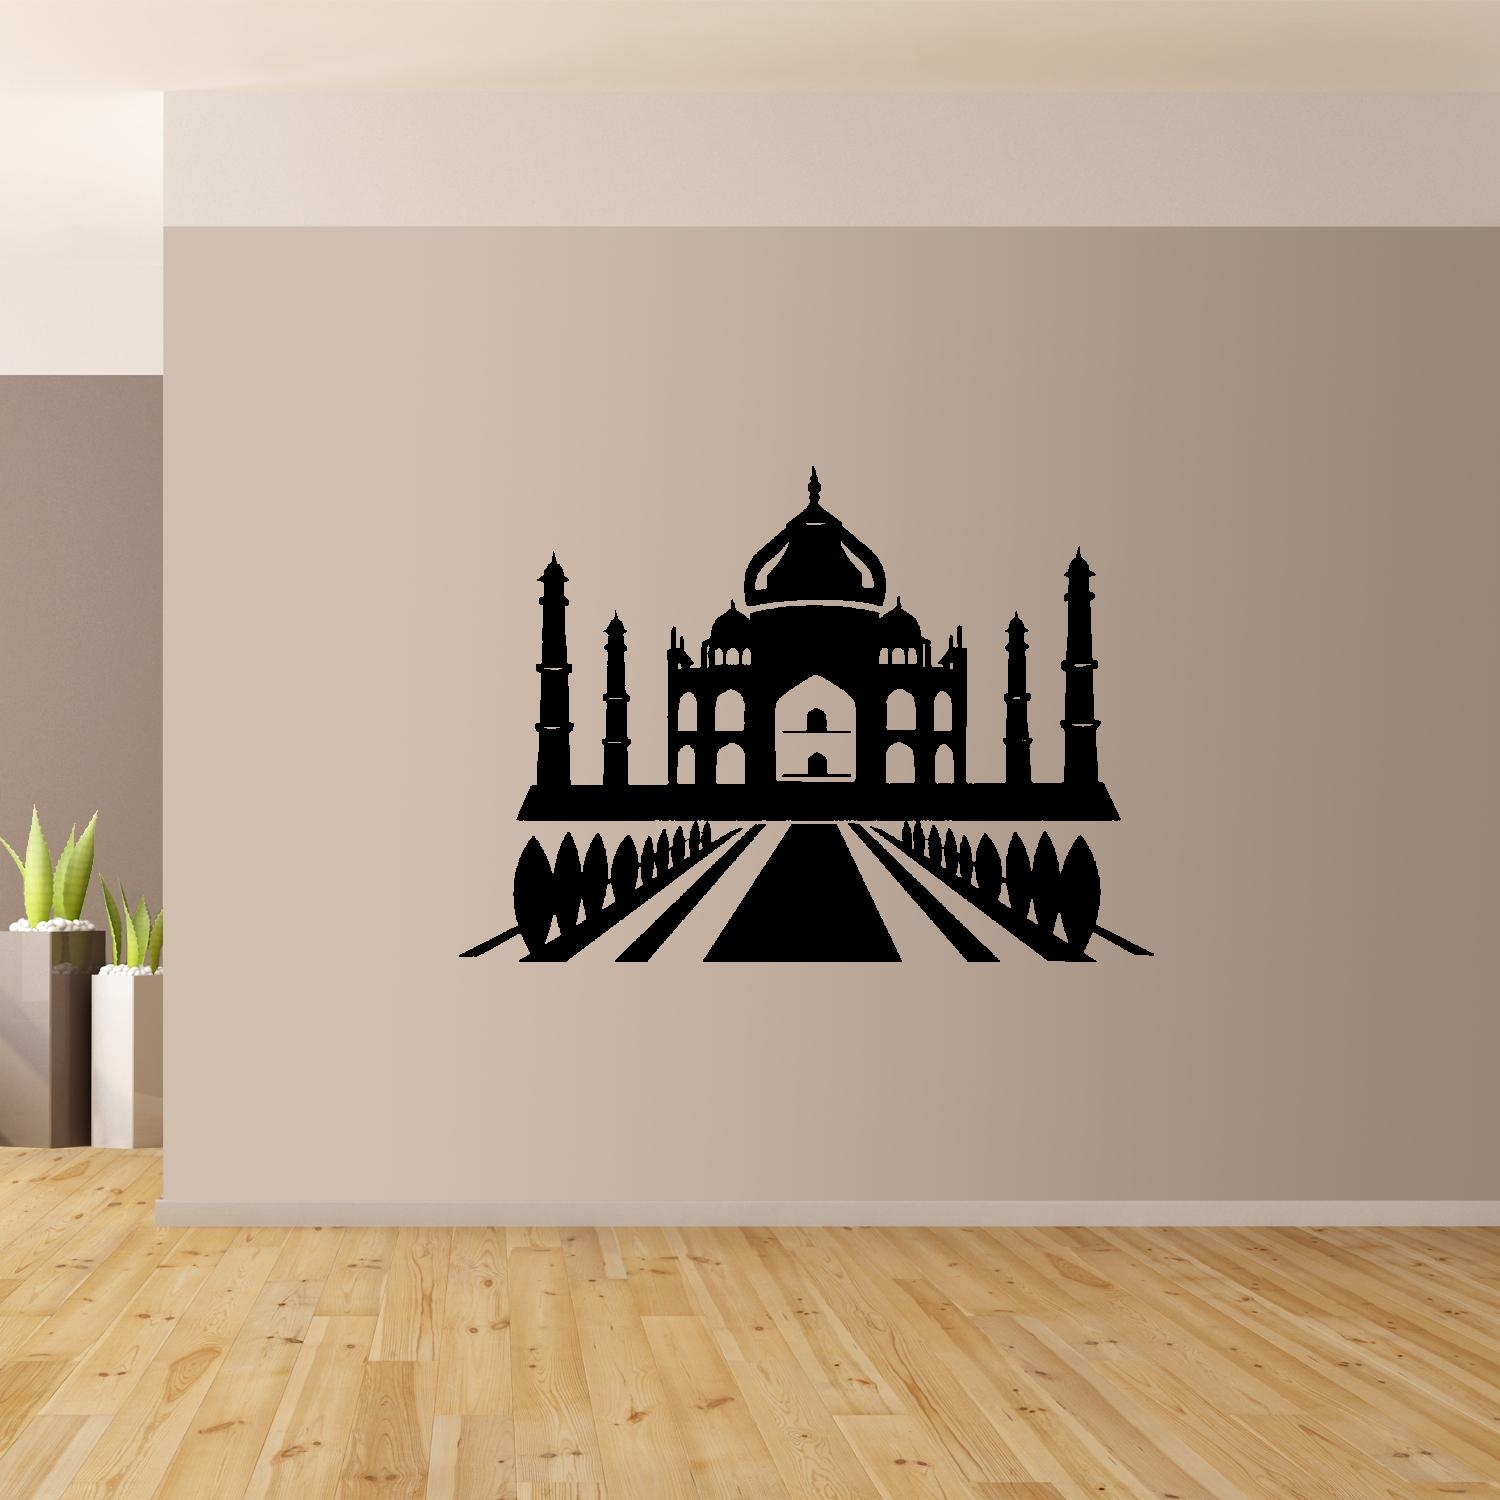 Taj Mahal Wall Art Giant Sticker Mural Graphic Wallart India Intended For Taj Mahal Wall Art (Image 19 of 20)